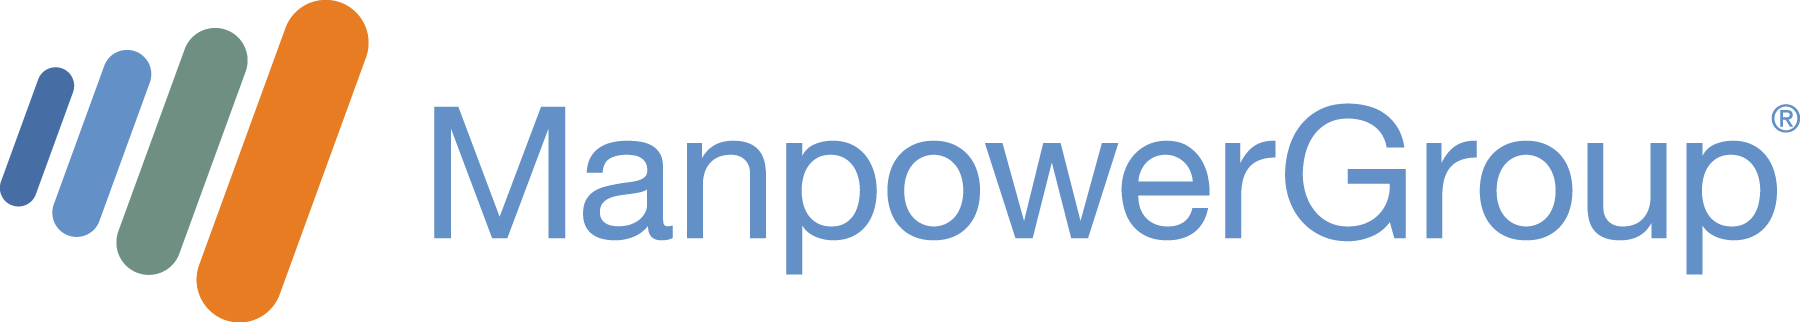 ManpowerGroup Web Horizontal Logo for Dark Background